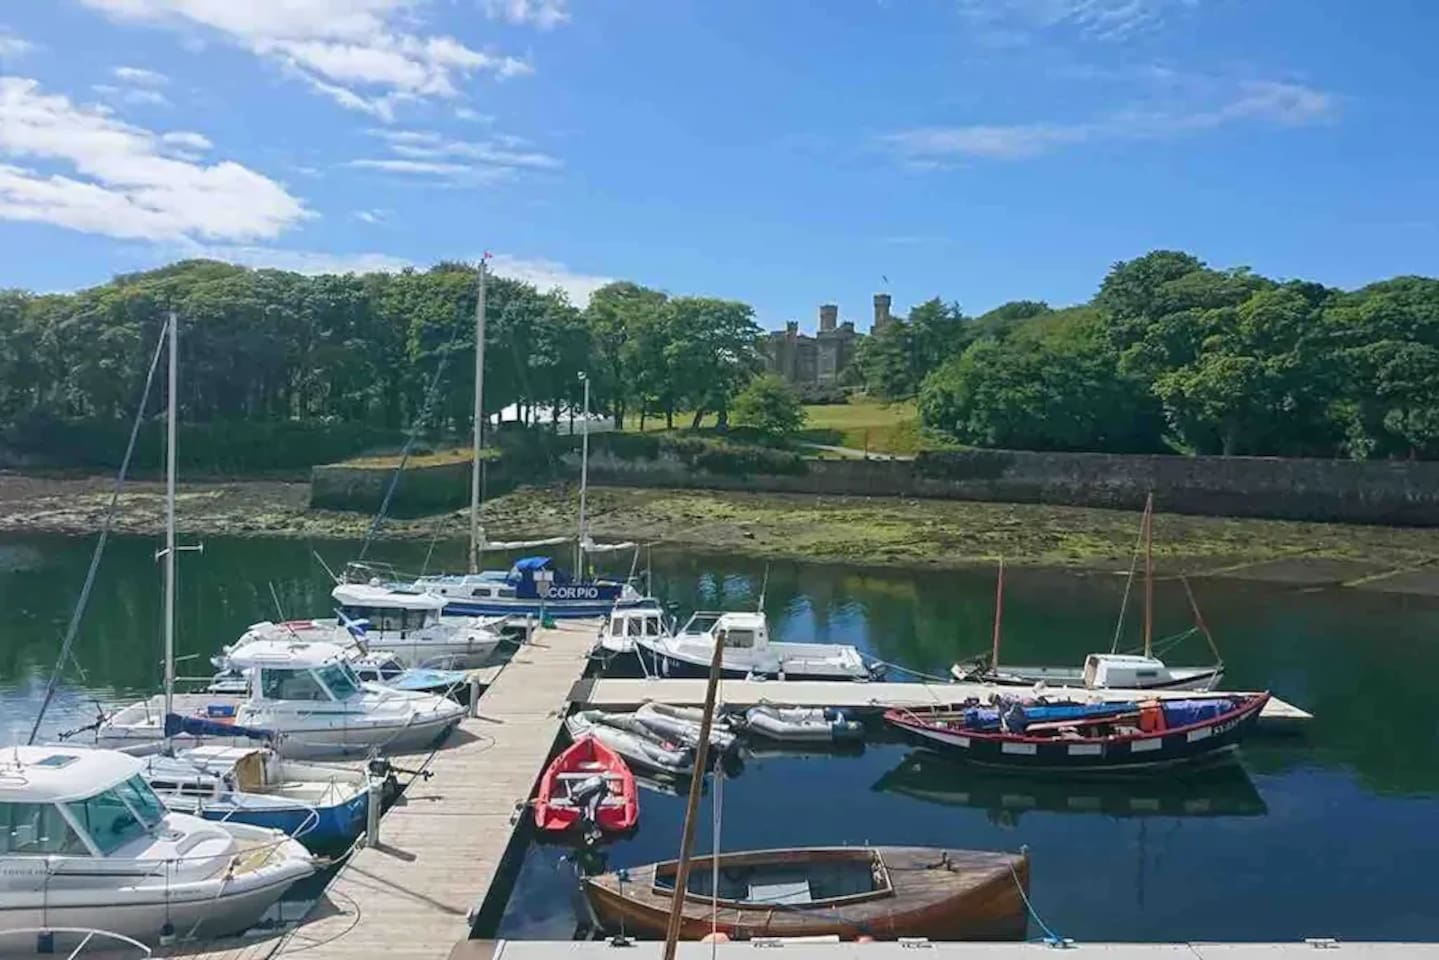 Stornoway Harbour, across the road from the blue house